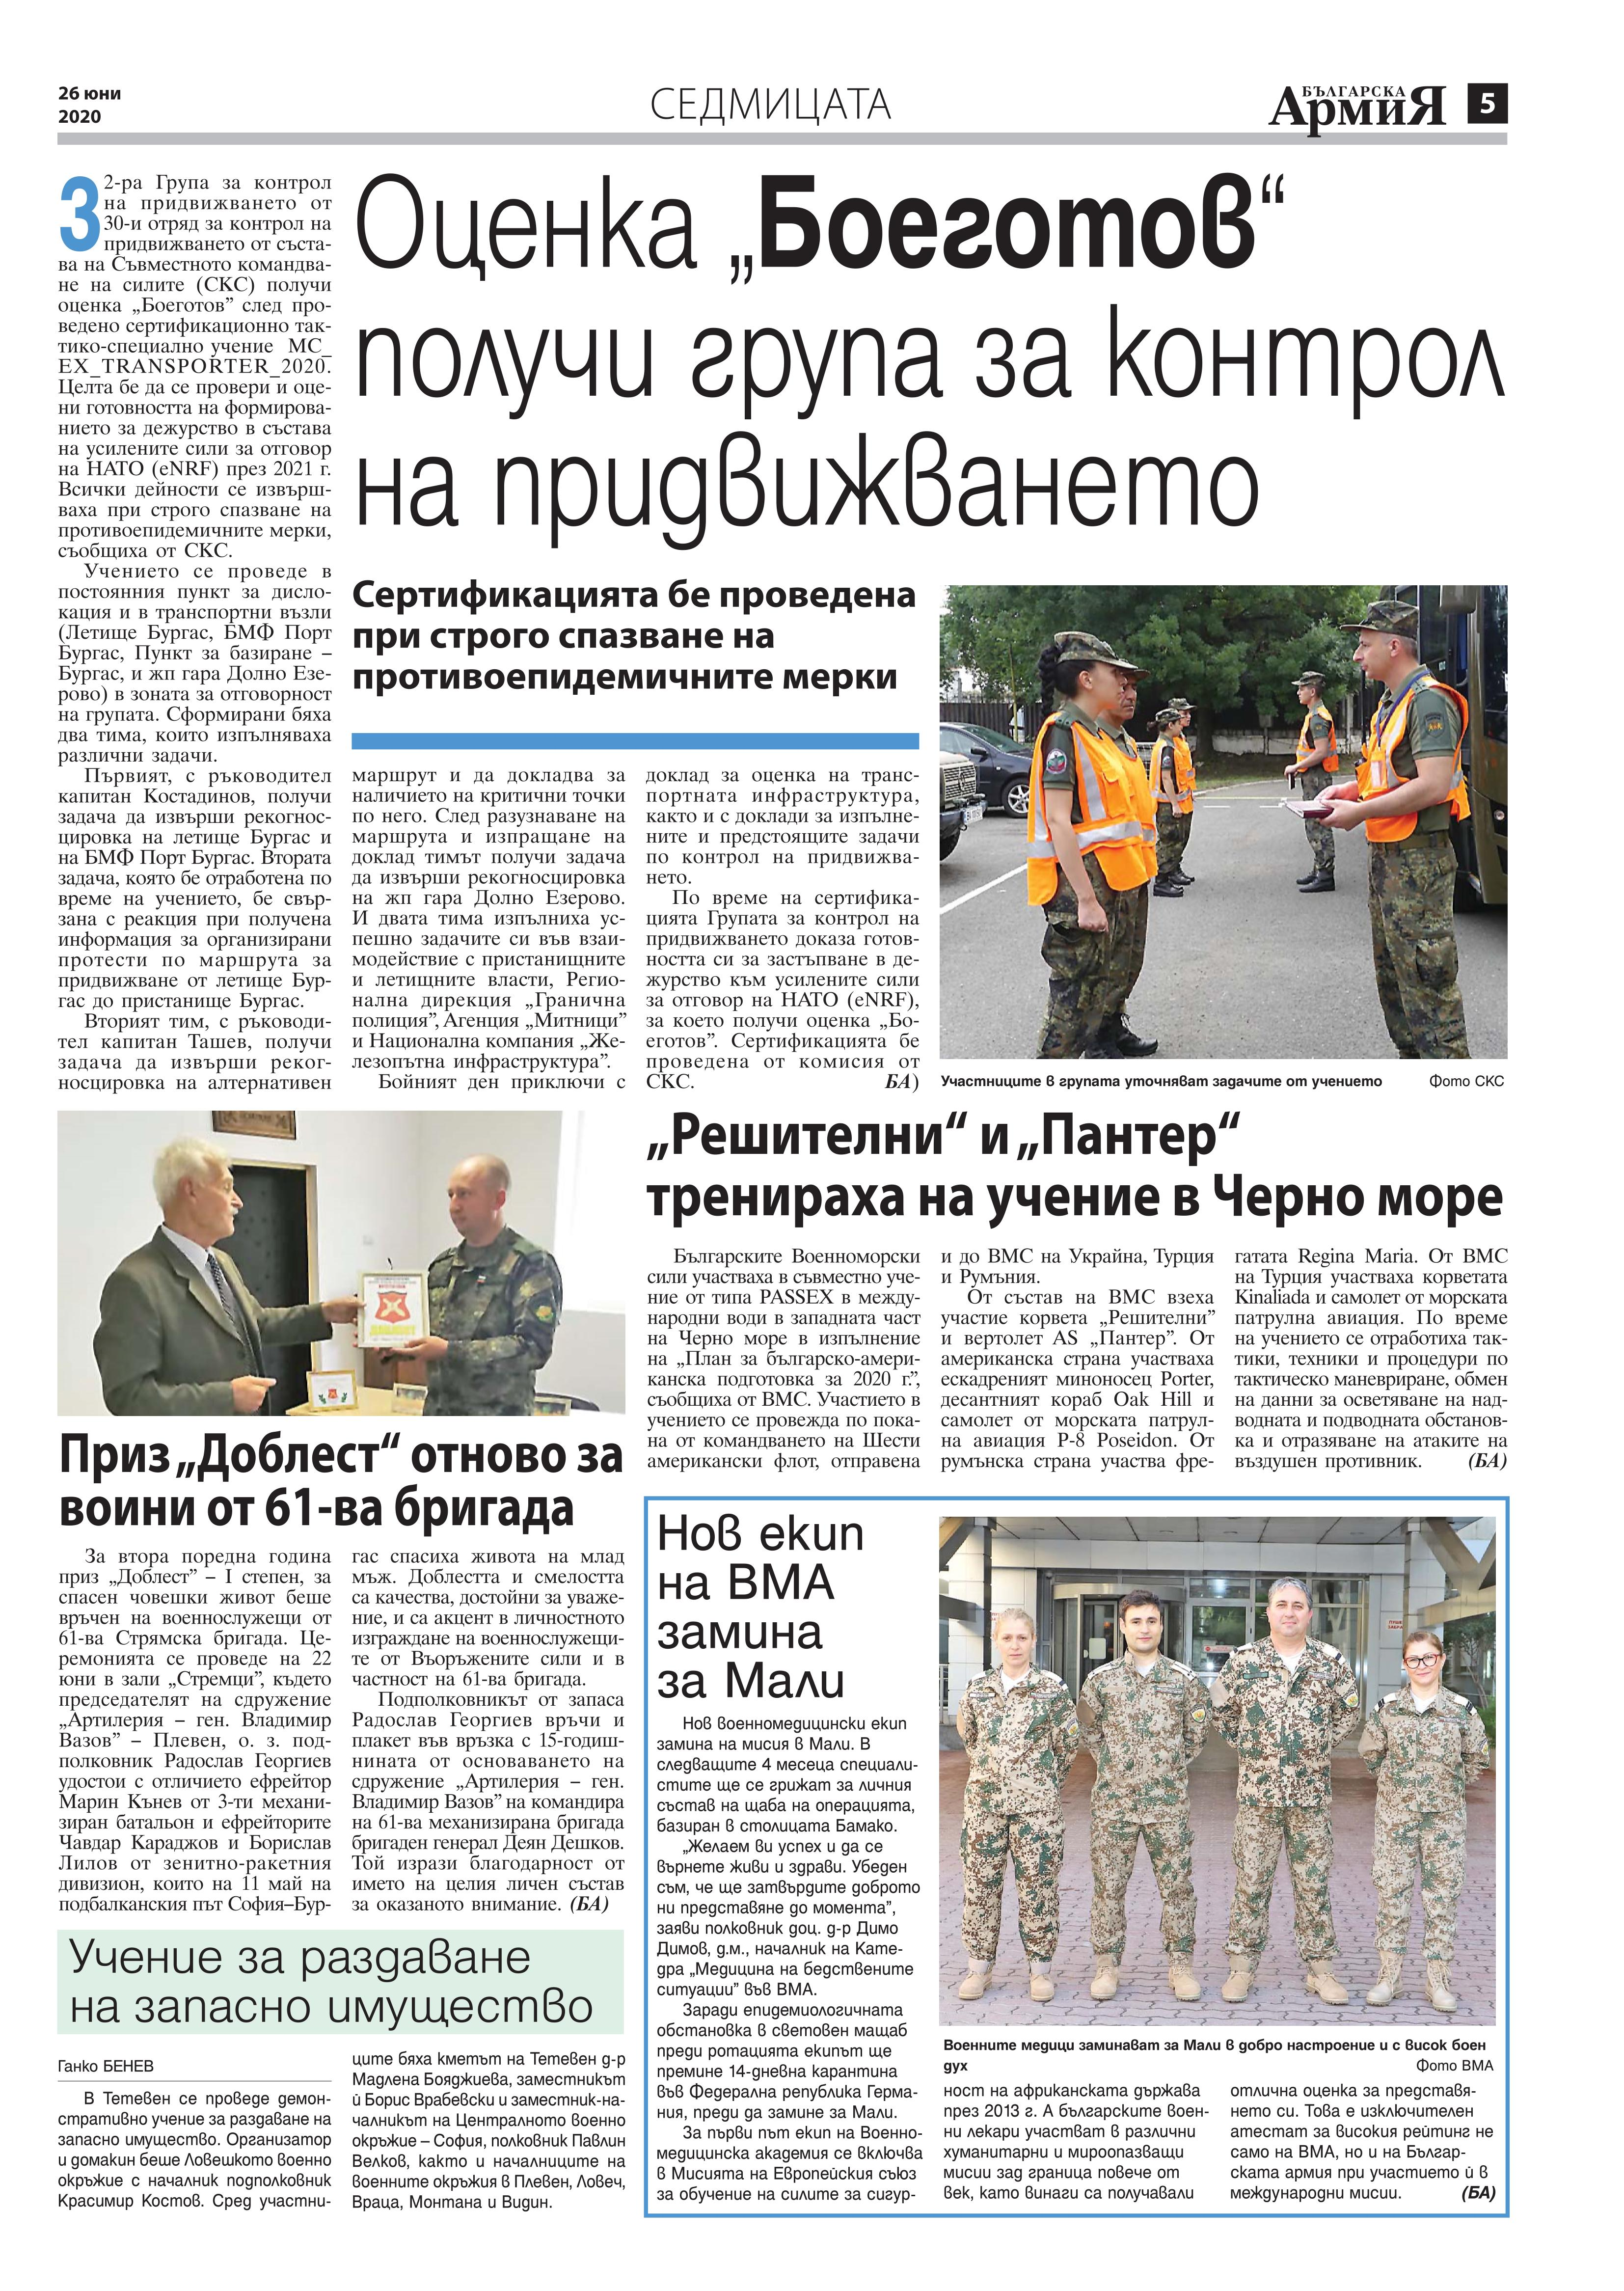 https://armymedia.bg/wp-content/uploads/2015/06/05.page1_-141.jpg